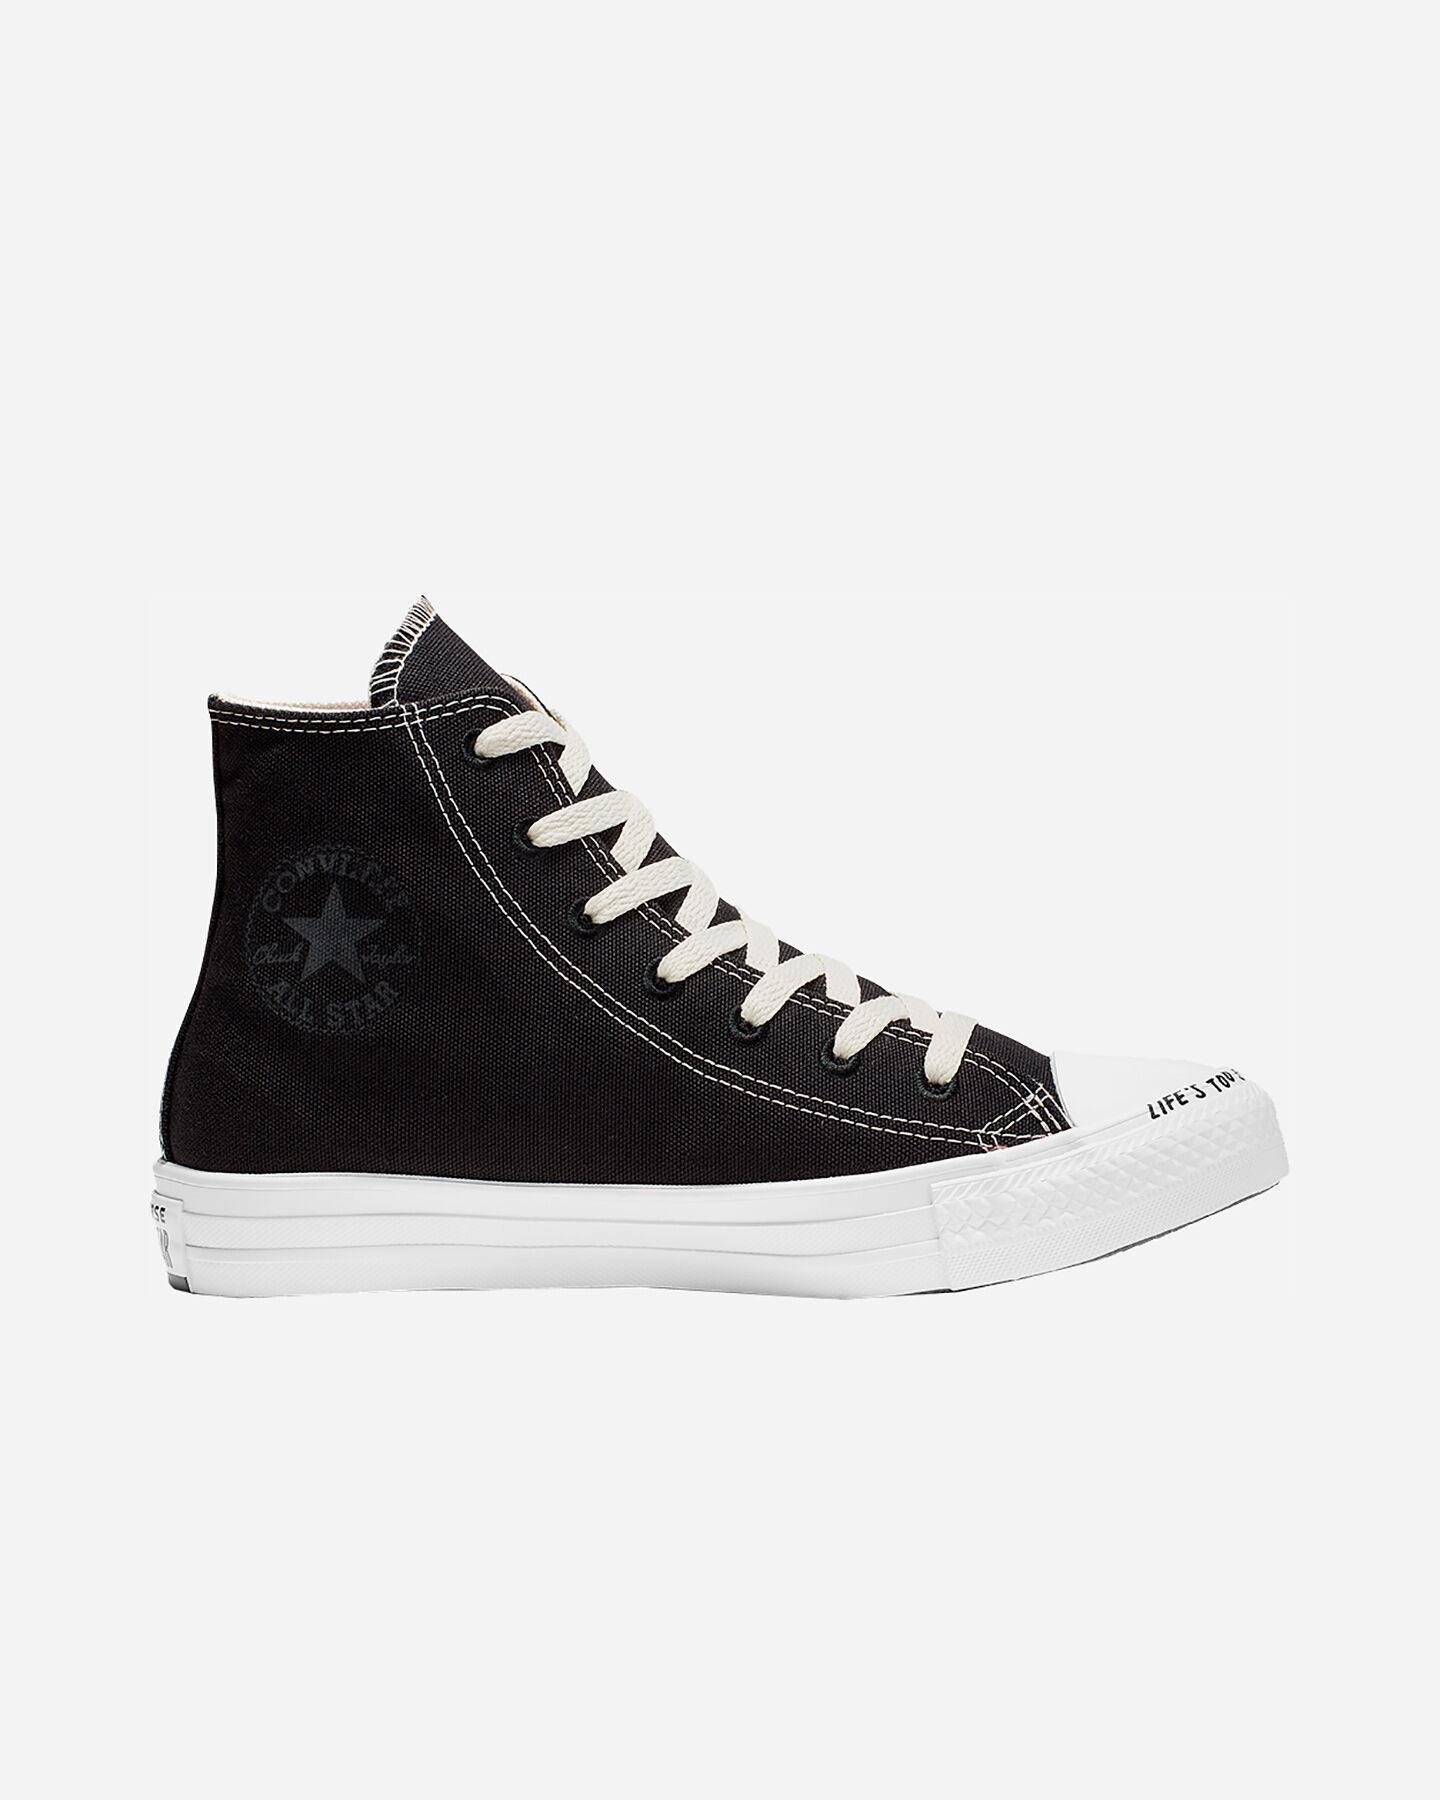 CHUCK TAYLOR ALL STAR HI RENEW M